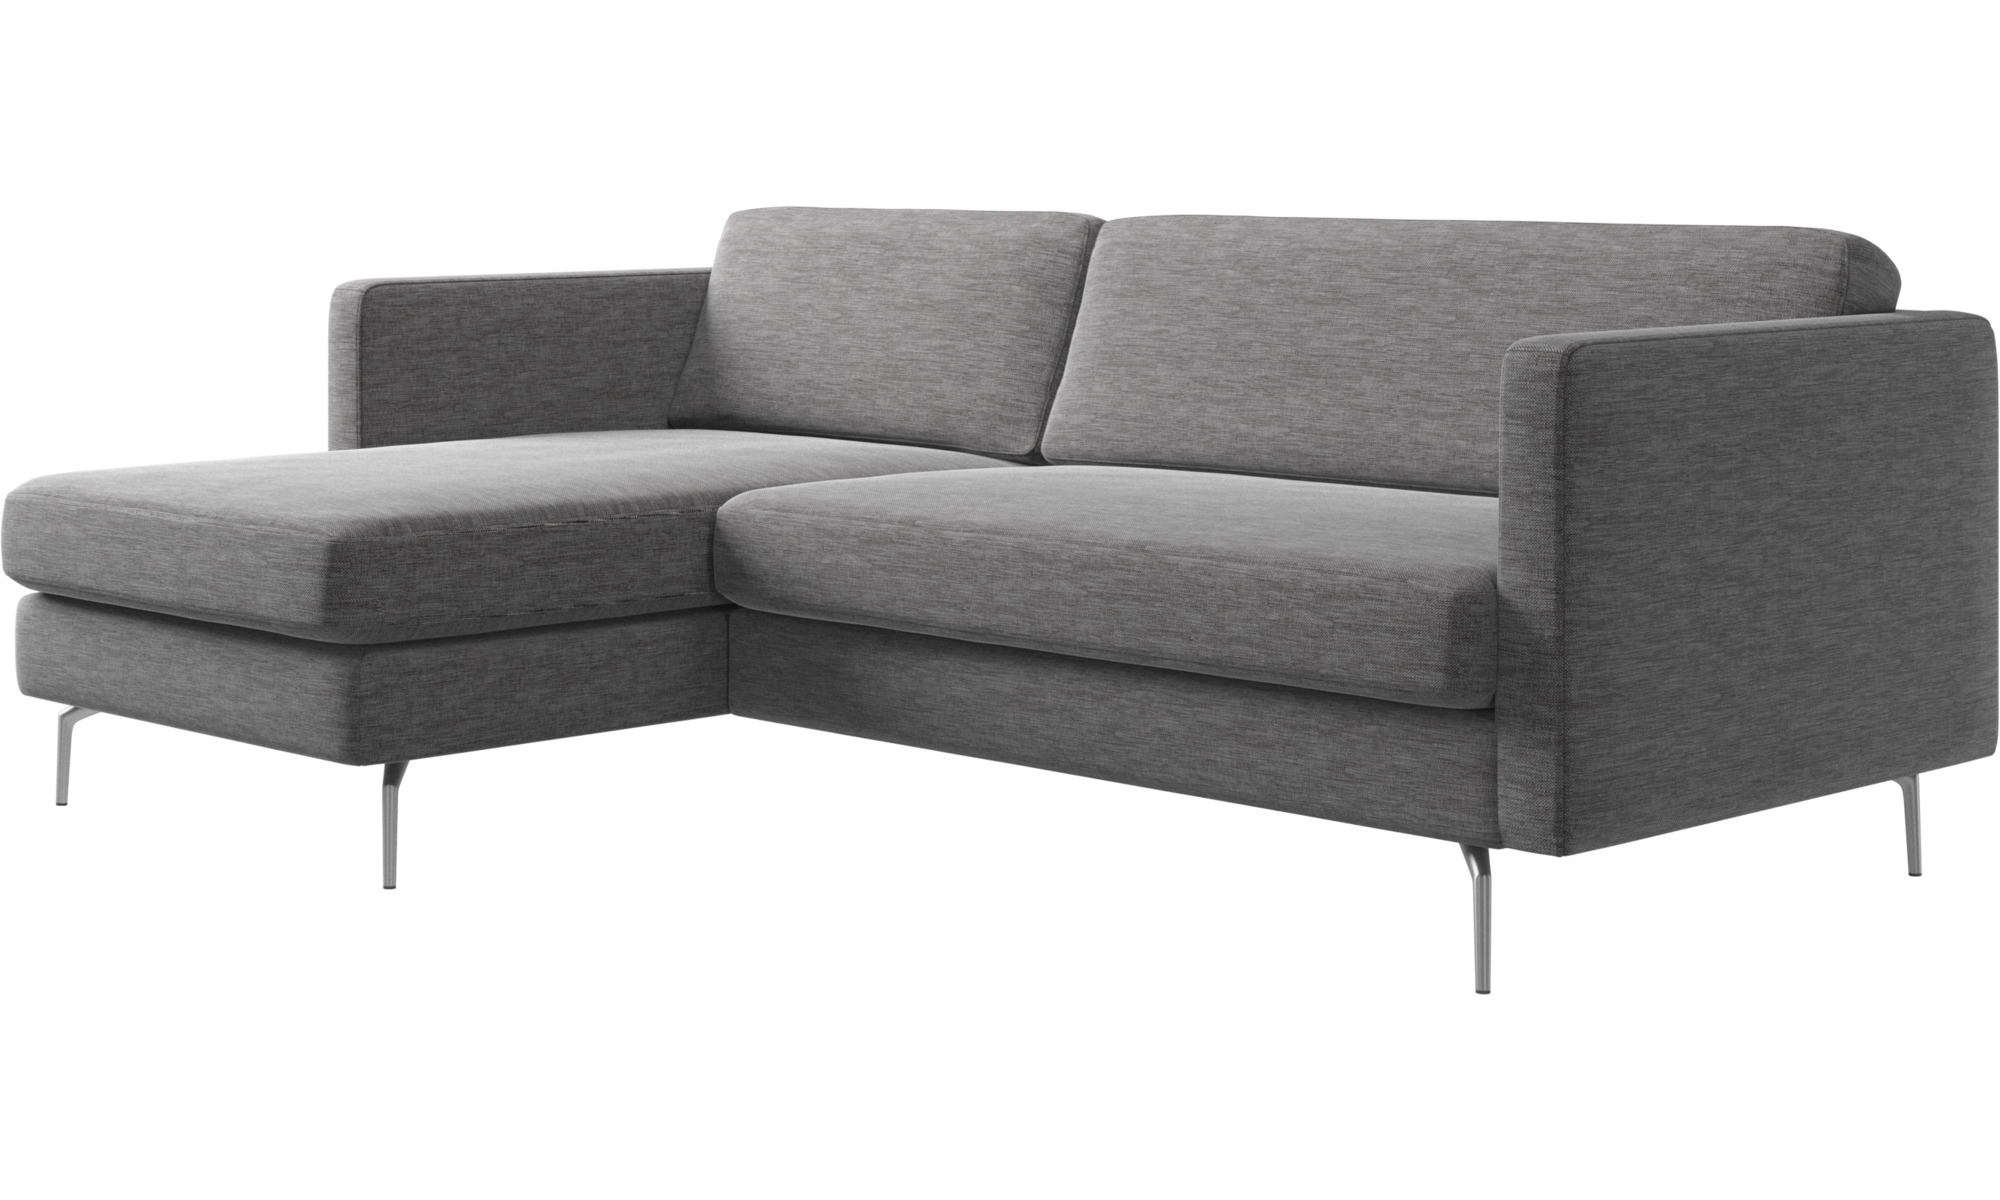 Chase Lounge Sofa Outline Chaise Longue Sofa By Muuto